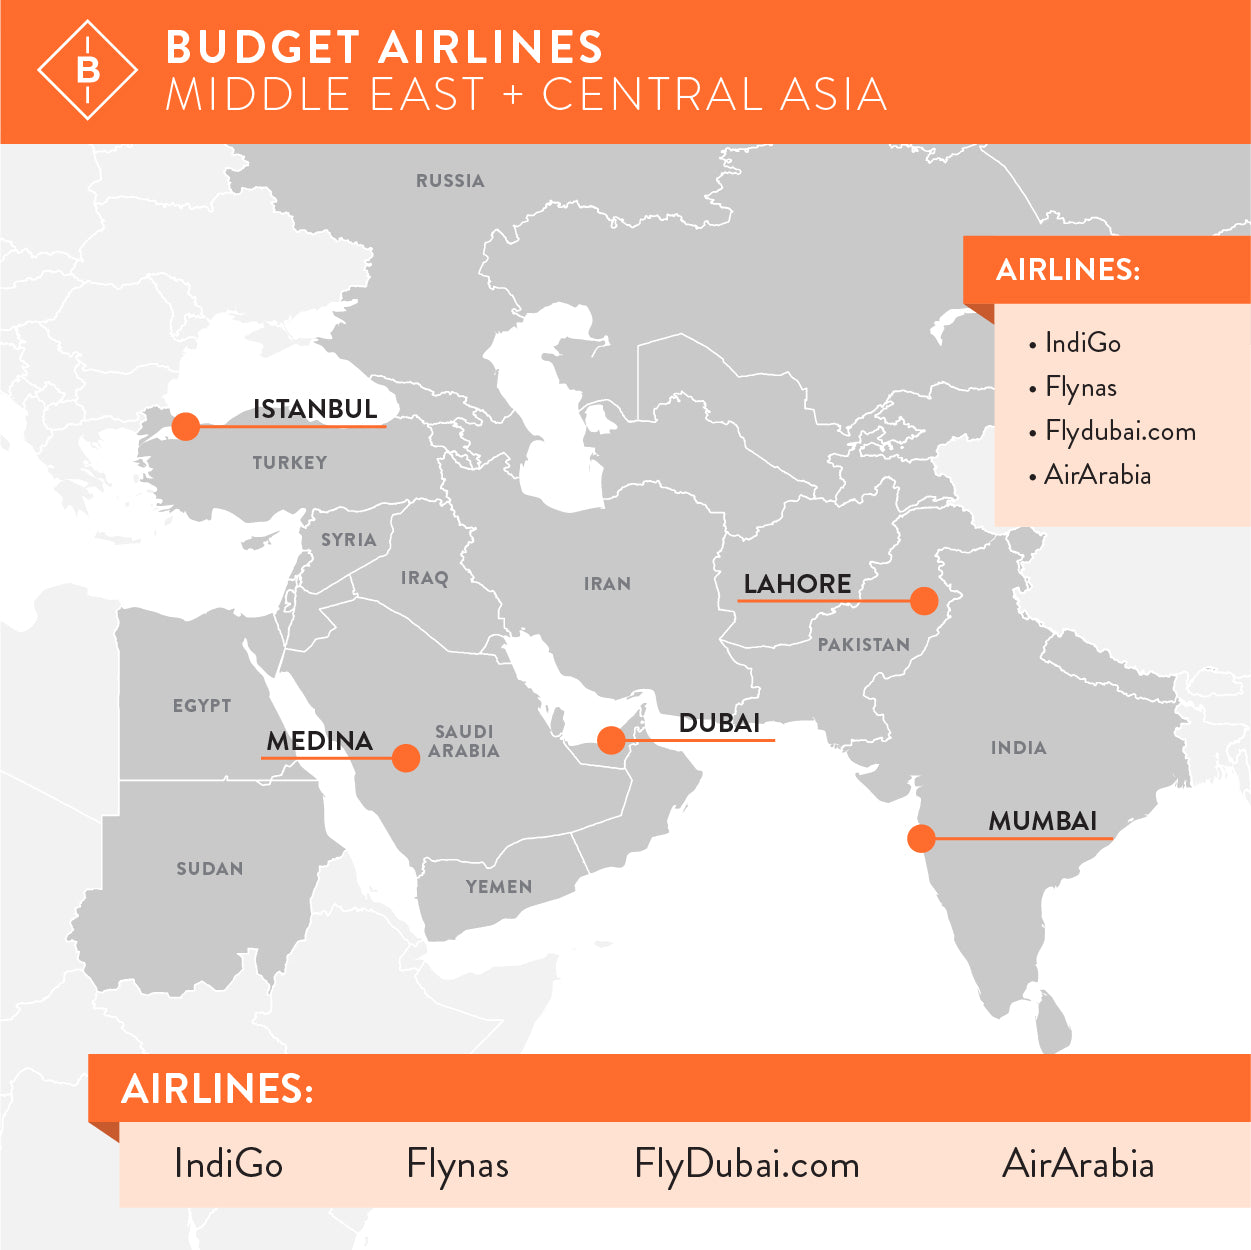 Options for low cost carriers in the Middle East & Central Asia.